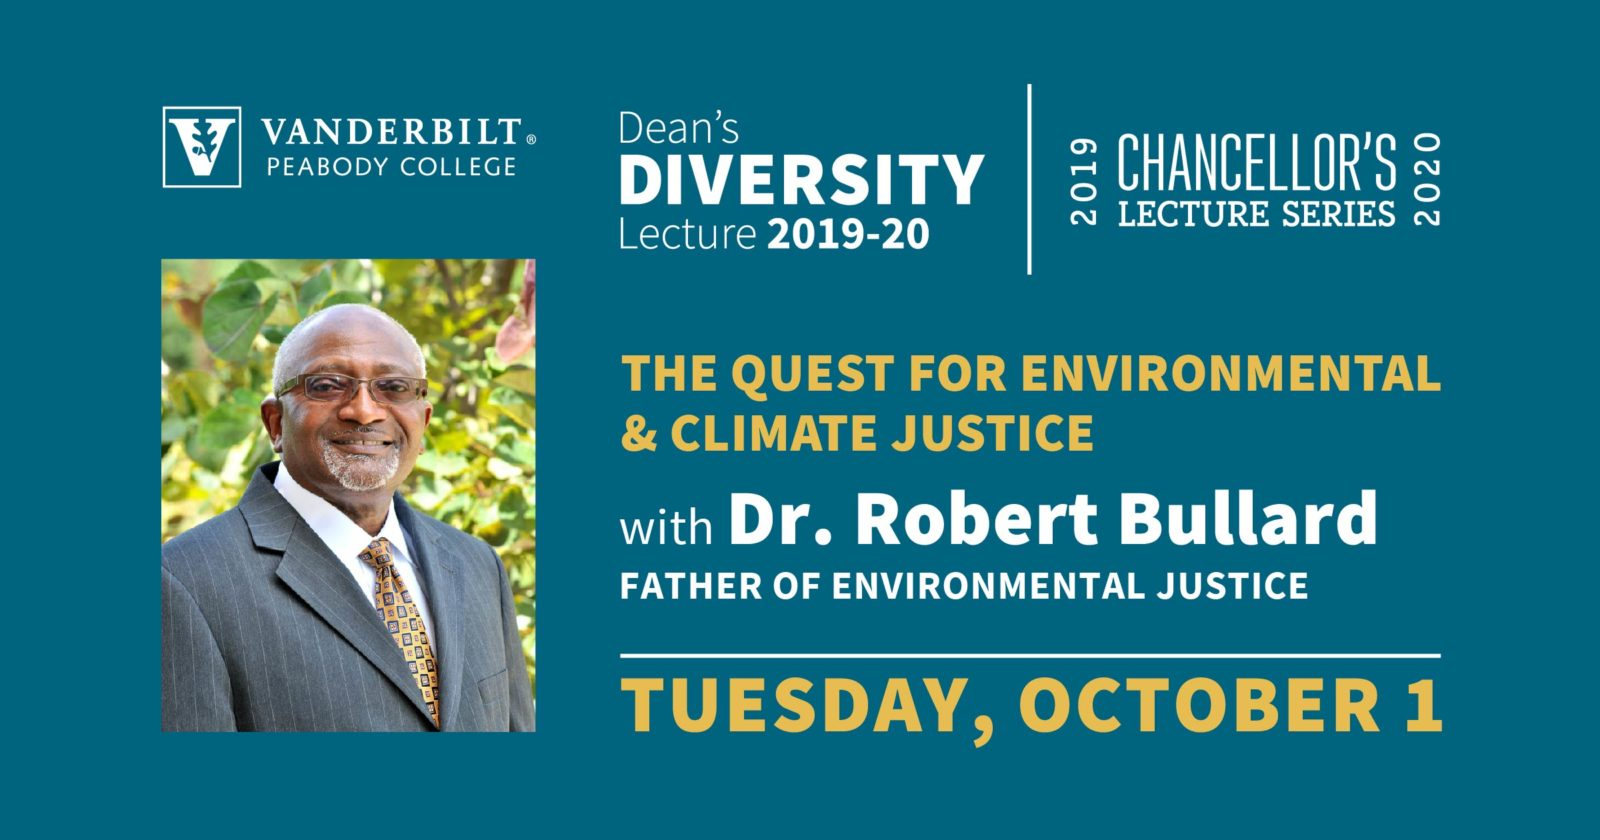 Chancellor's Lecture Series and Dean's Diversity Lecture will host Robert Bullard, the father of environmental justice. Bullard will discuss the quest for environmental and climate justice.